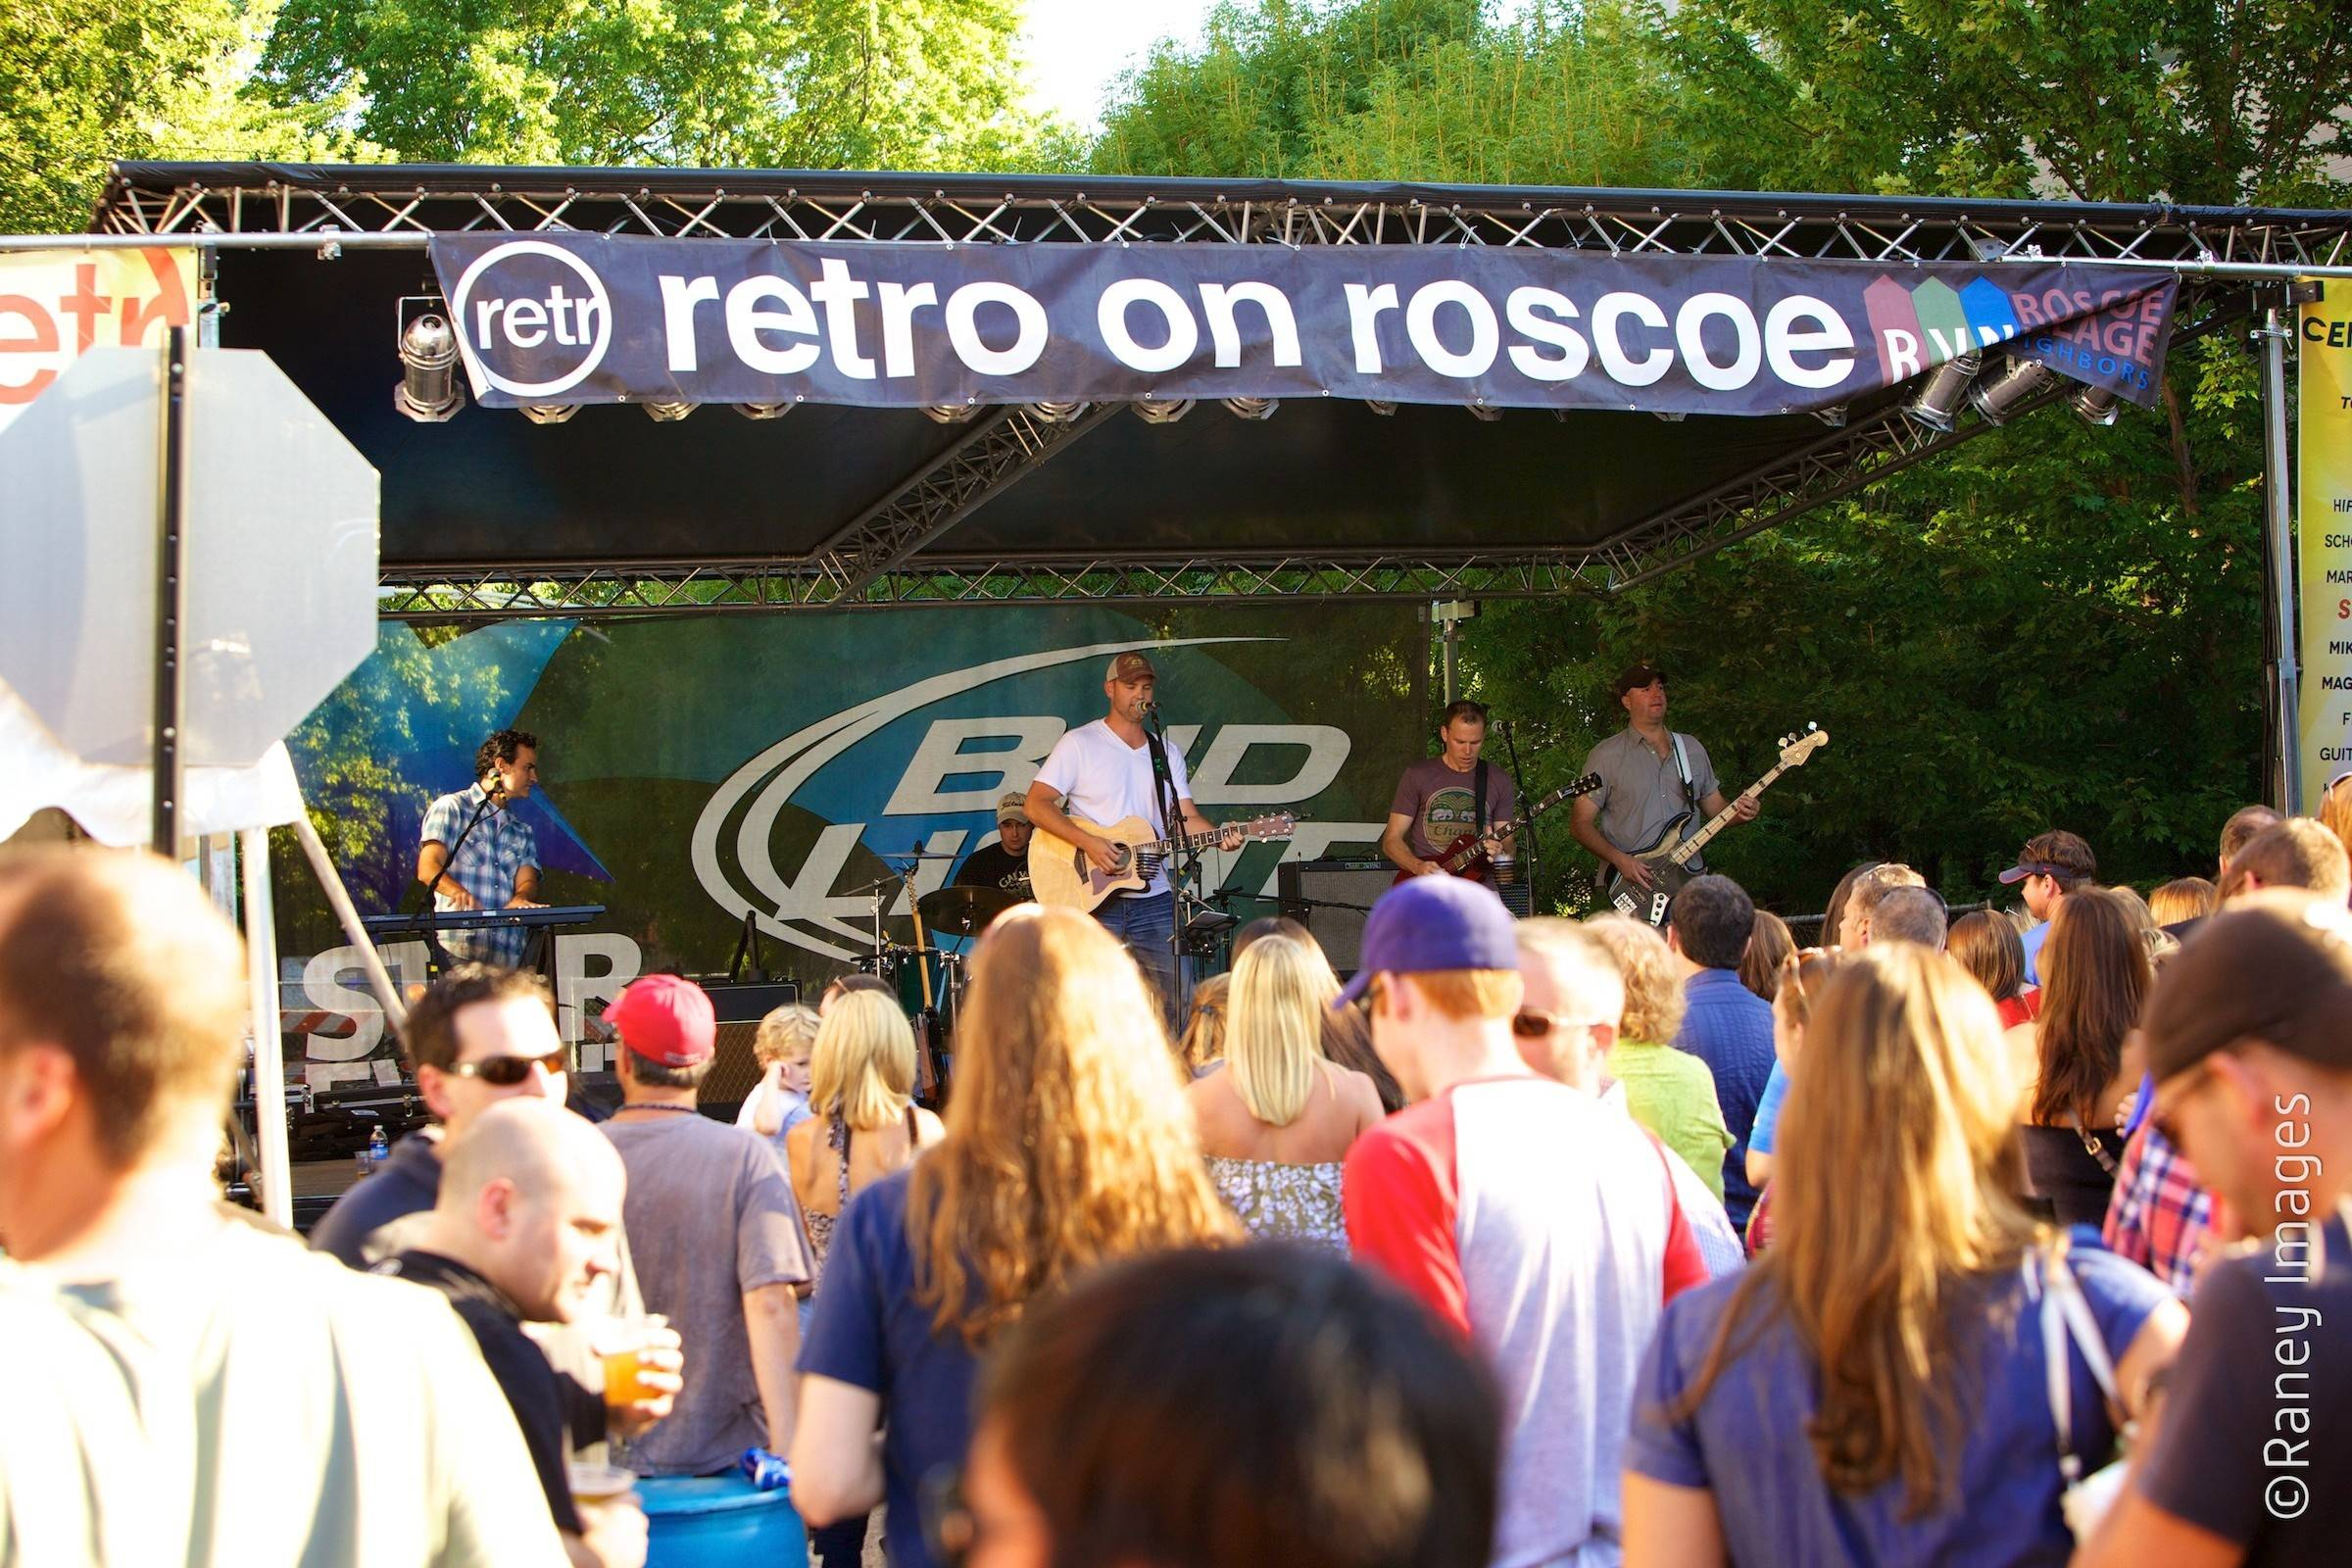 Remember the good old days at Retro on Roscoe, Aug. 9-10, in Chicago.